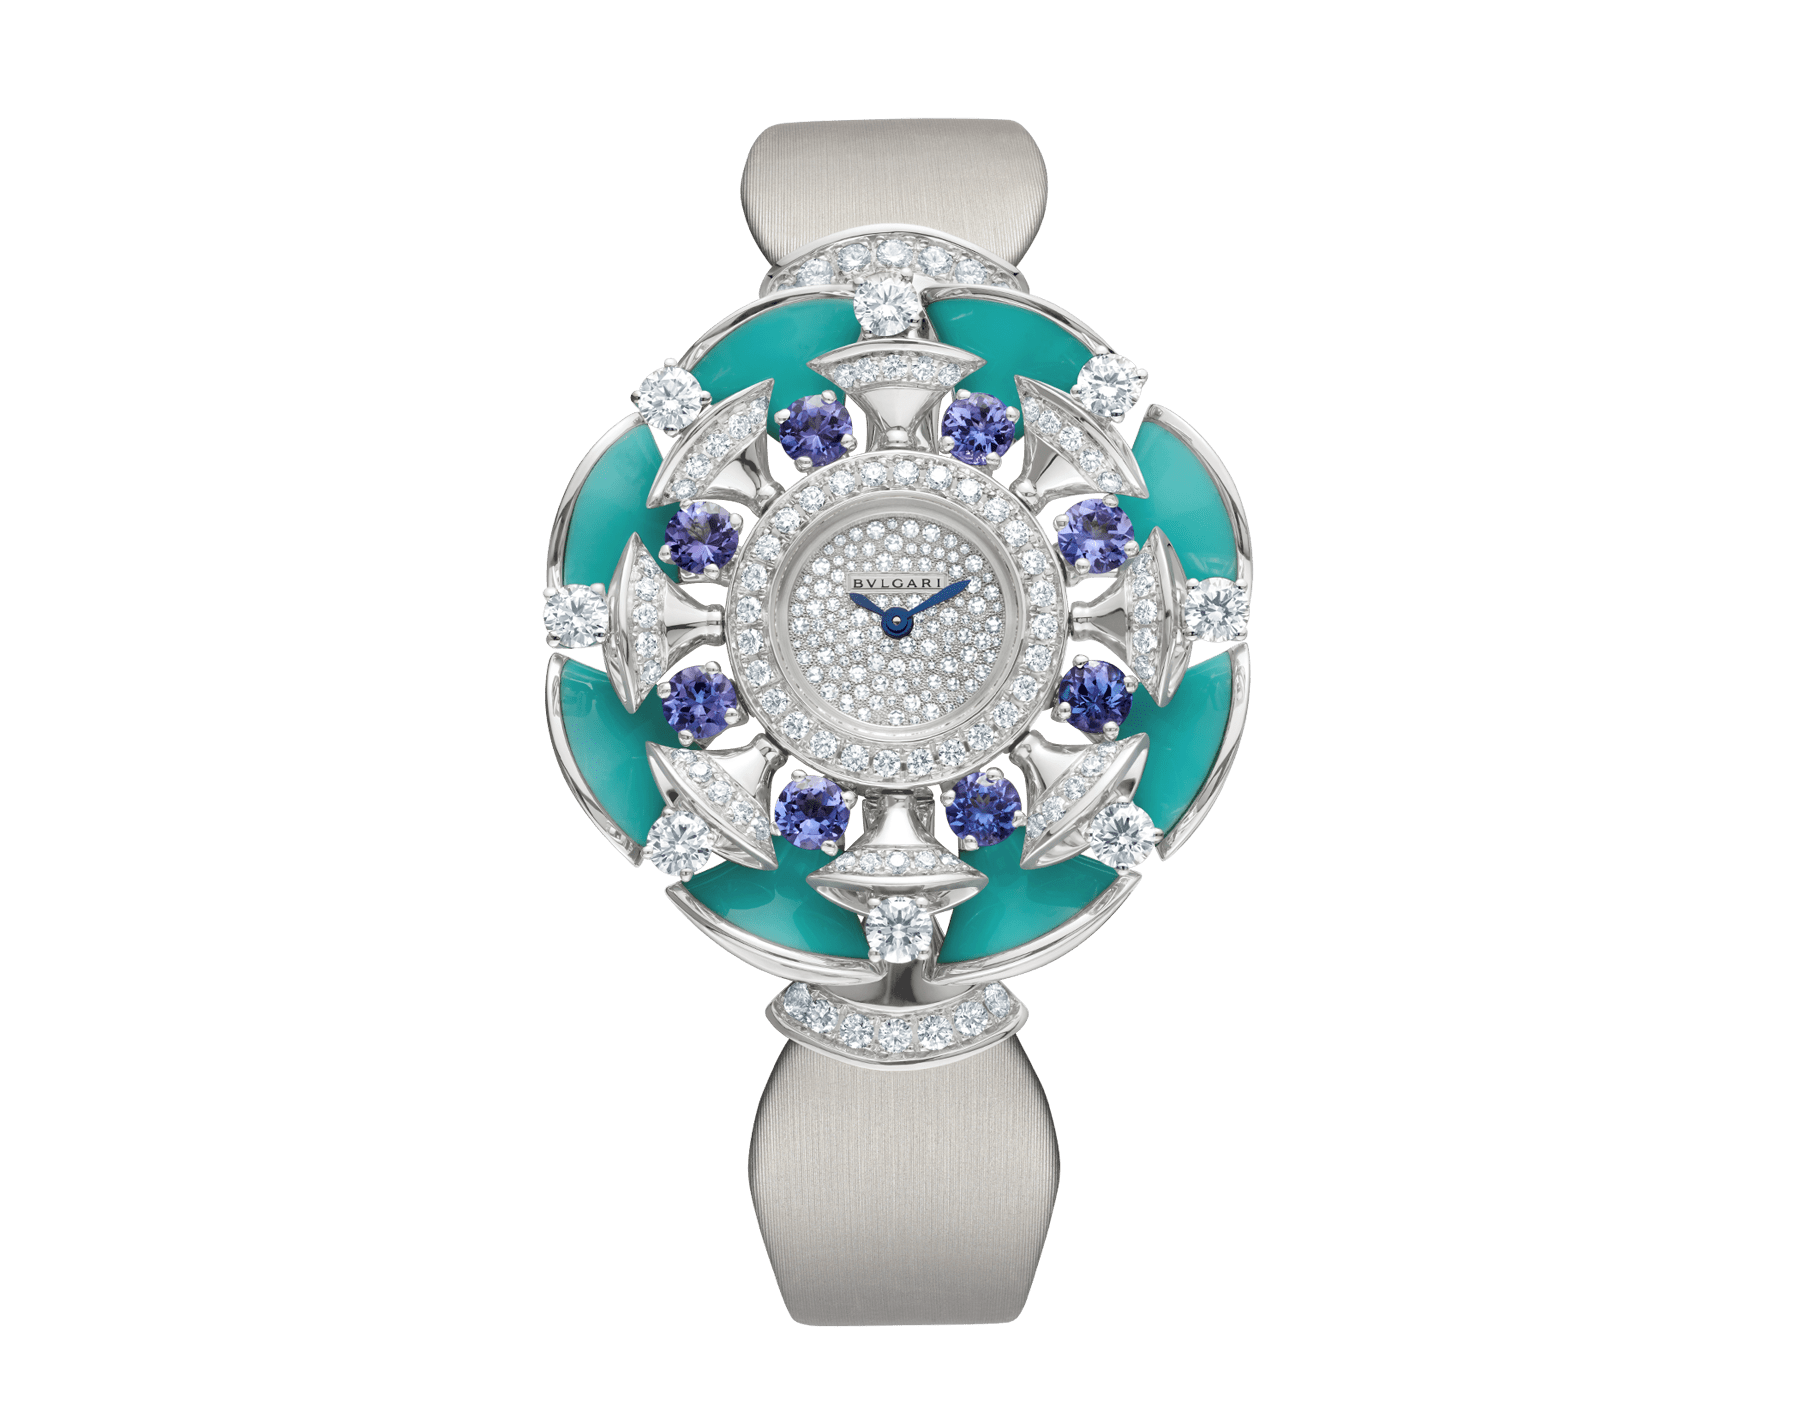 DIVAS' DREAM watch with 18 kt white gold case set with brilliant-cut diamonds, tanzanites and turquoises, snow pavé dial and grey satin bracelet 102421 image 1